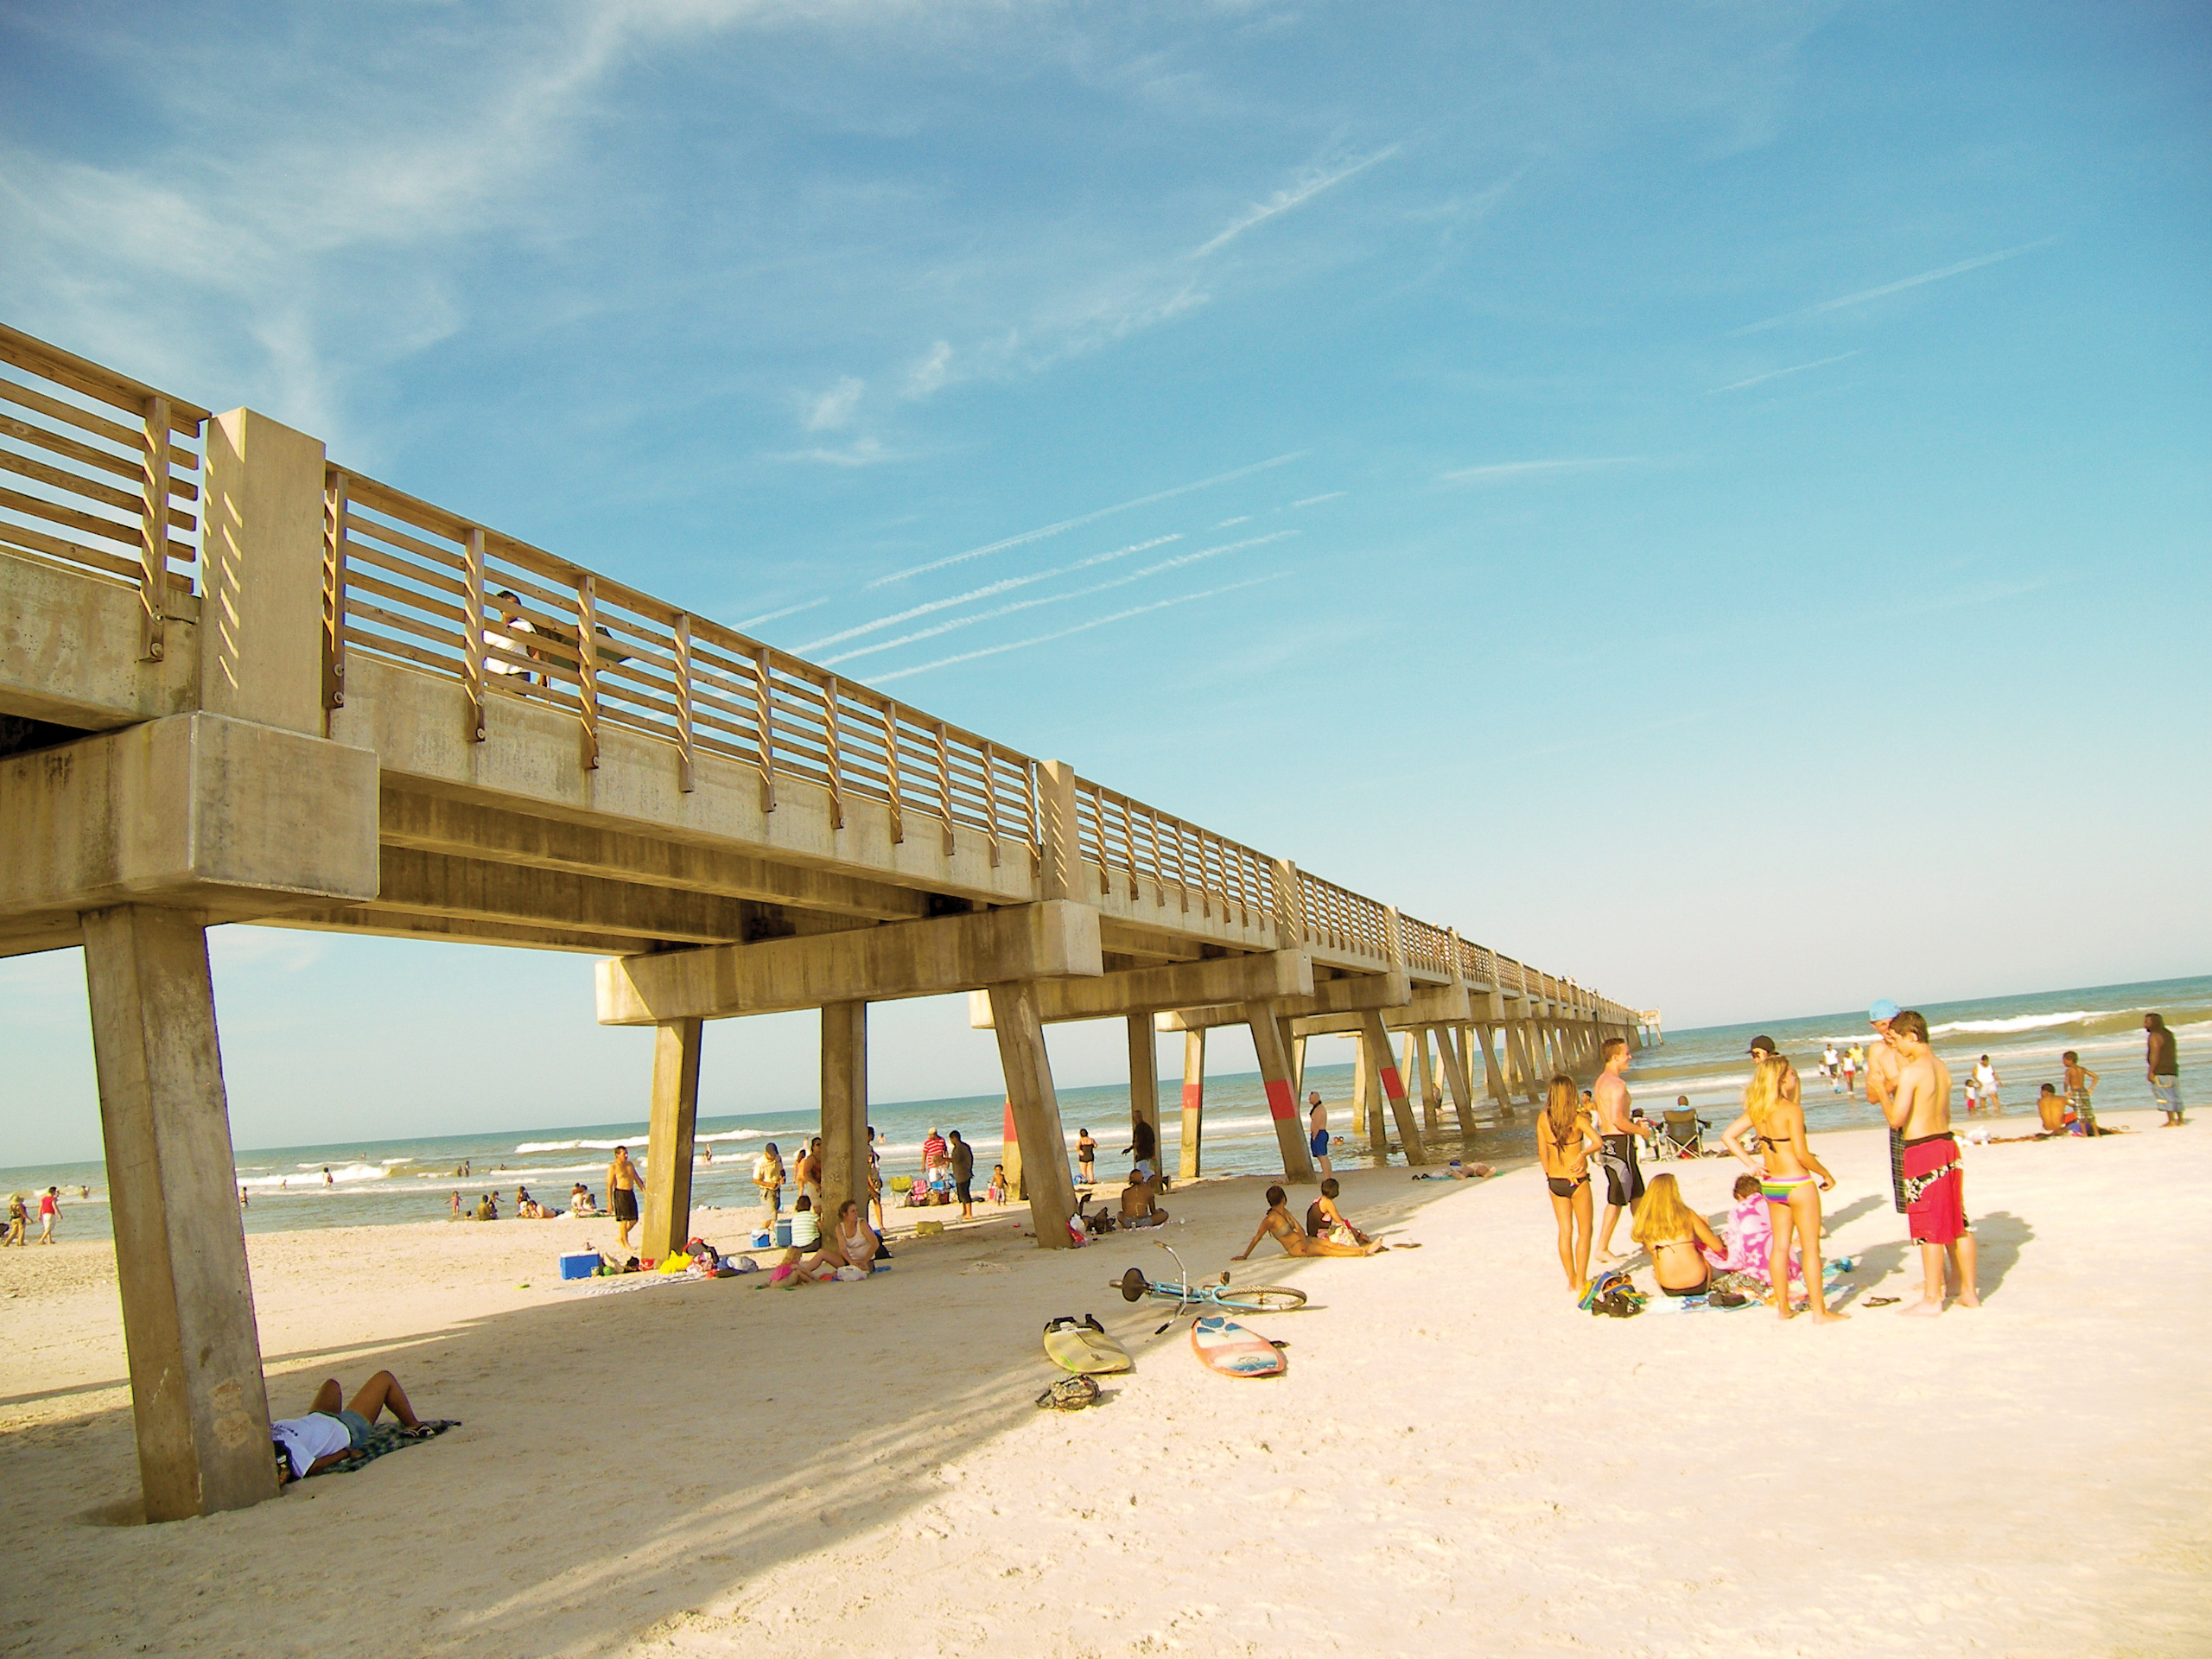 jacksonville beach chat Walk-in care center 21 w church street, jacksonville, fl 32202 monday -  friday, 7:30 am - 5:30 pm saturday, closed view accepted forms of payment .